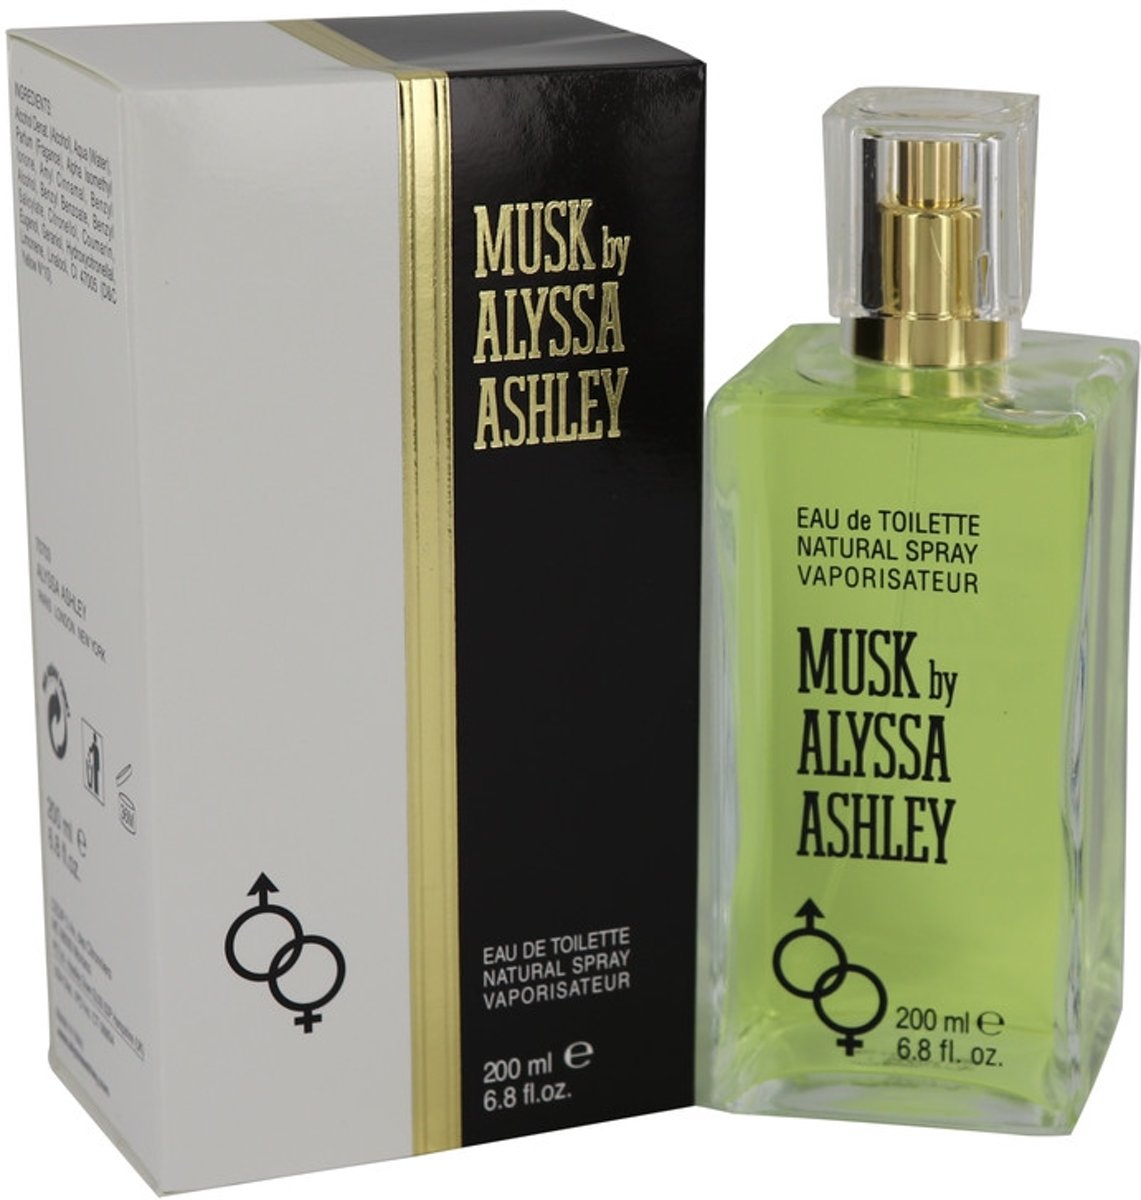 Alyssa Ashley Musk Eau De Toilette Limited Edition